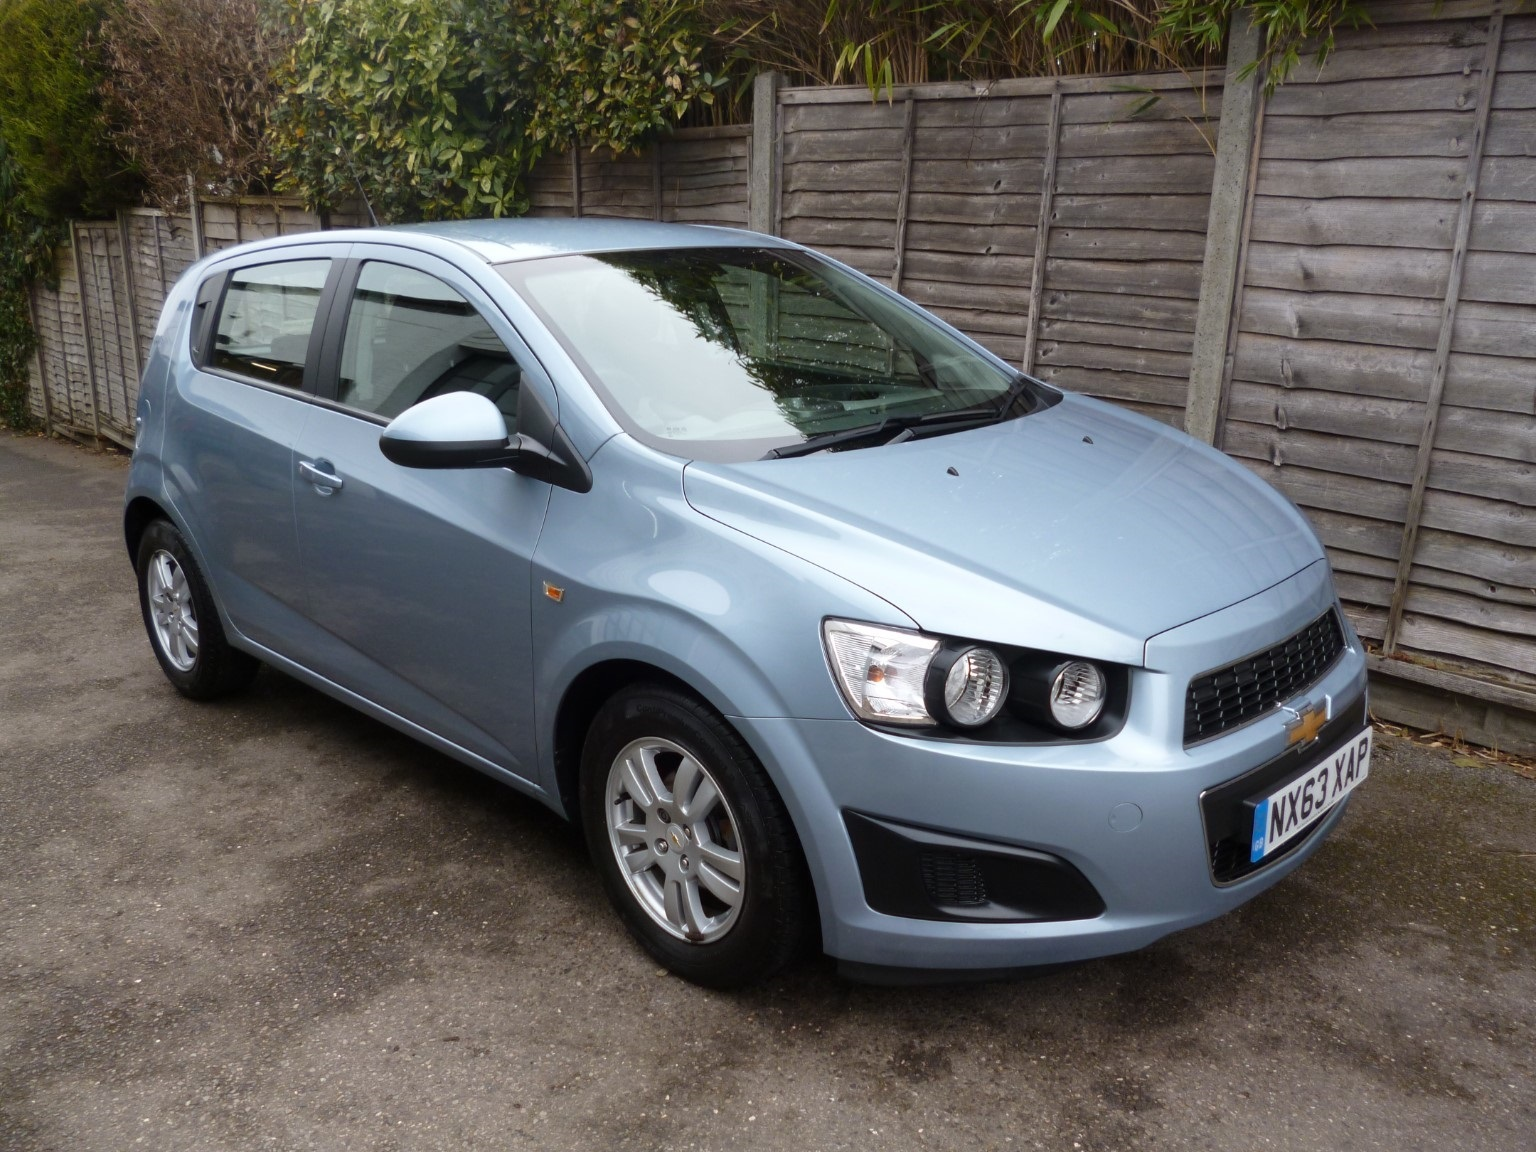 Used Chevrolet Aveo Cars, Second Hand Chevrolet Aveo